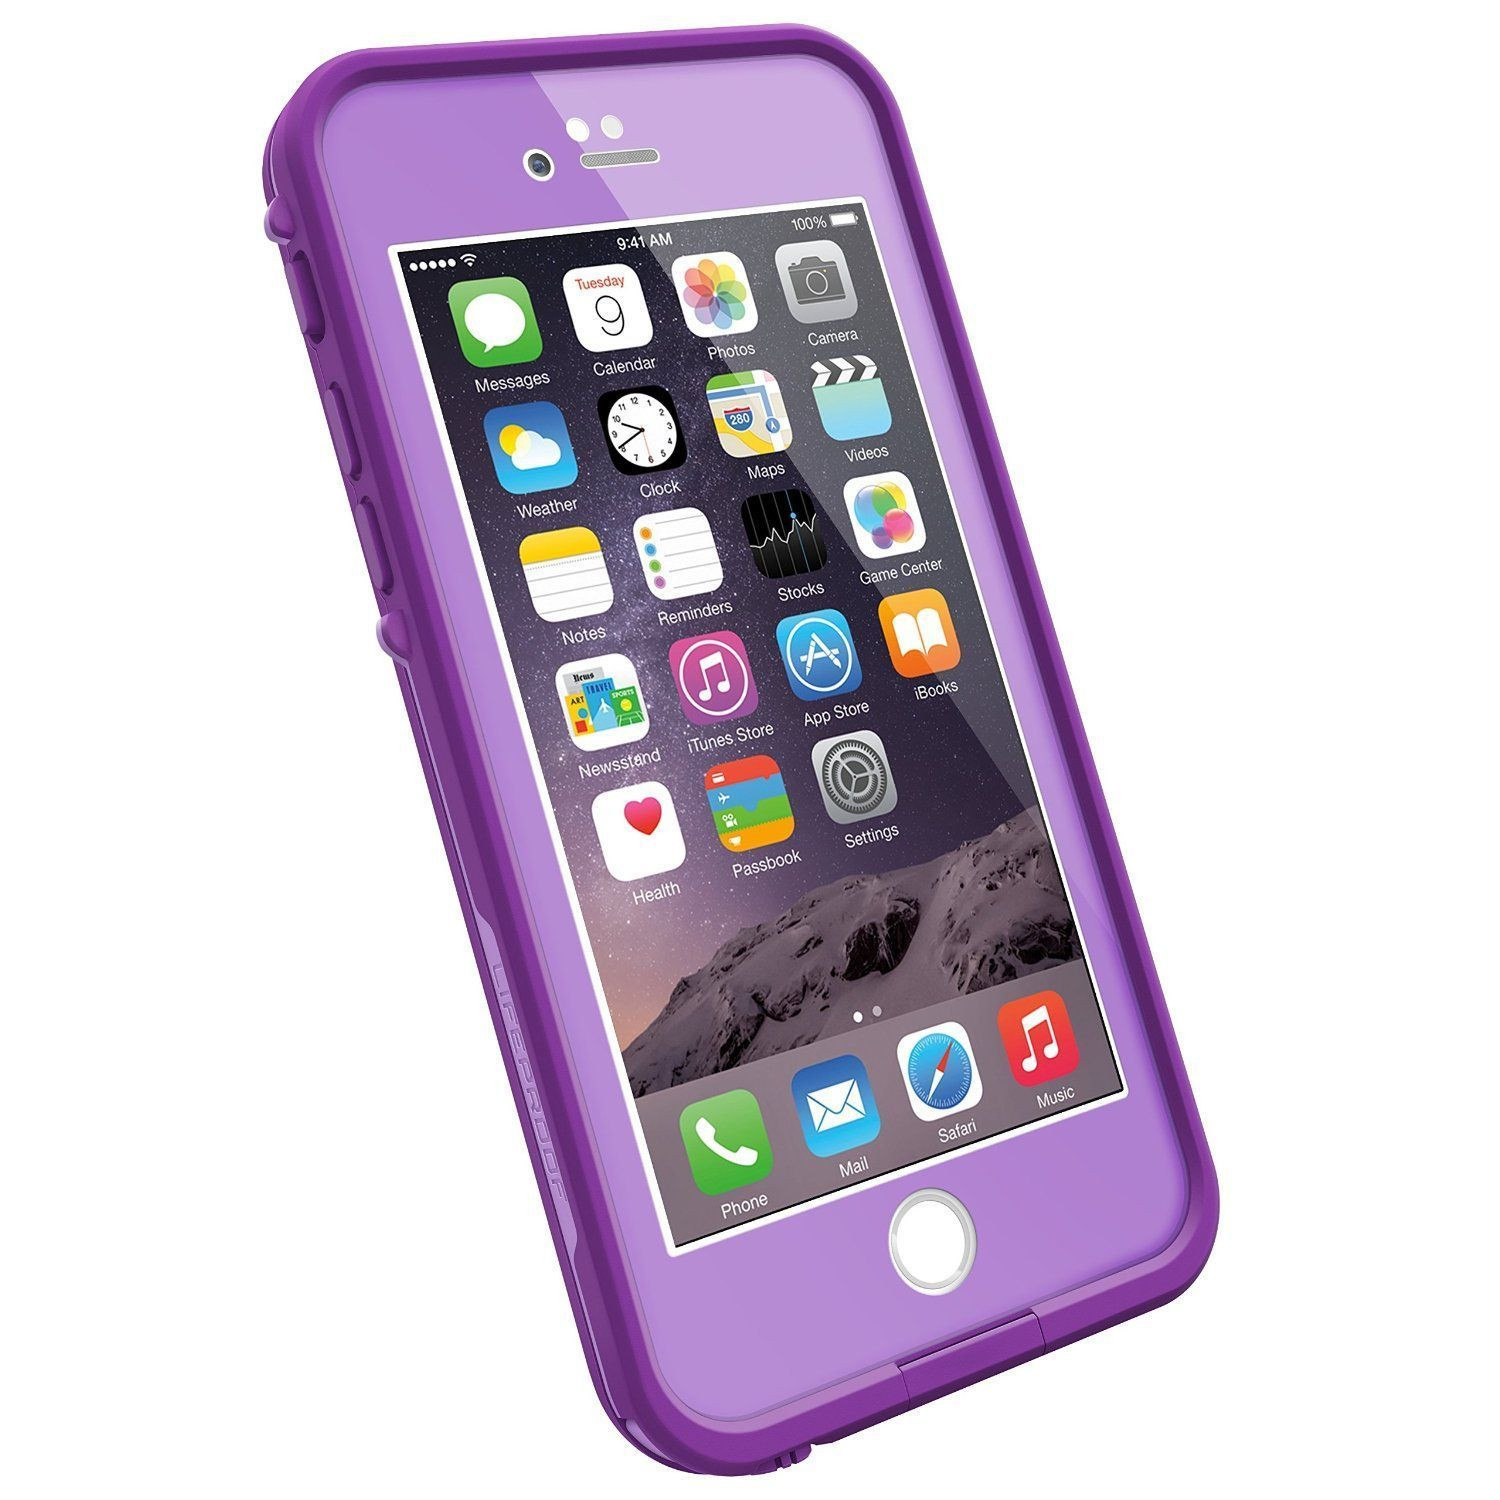 LifeProof FRE SERIES Waterproof Case for iPhone 5/5s/SE - Retail Packaging - BLACK.